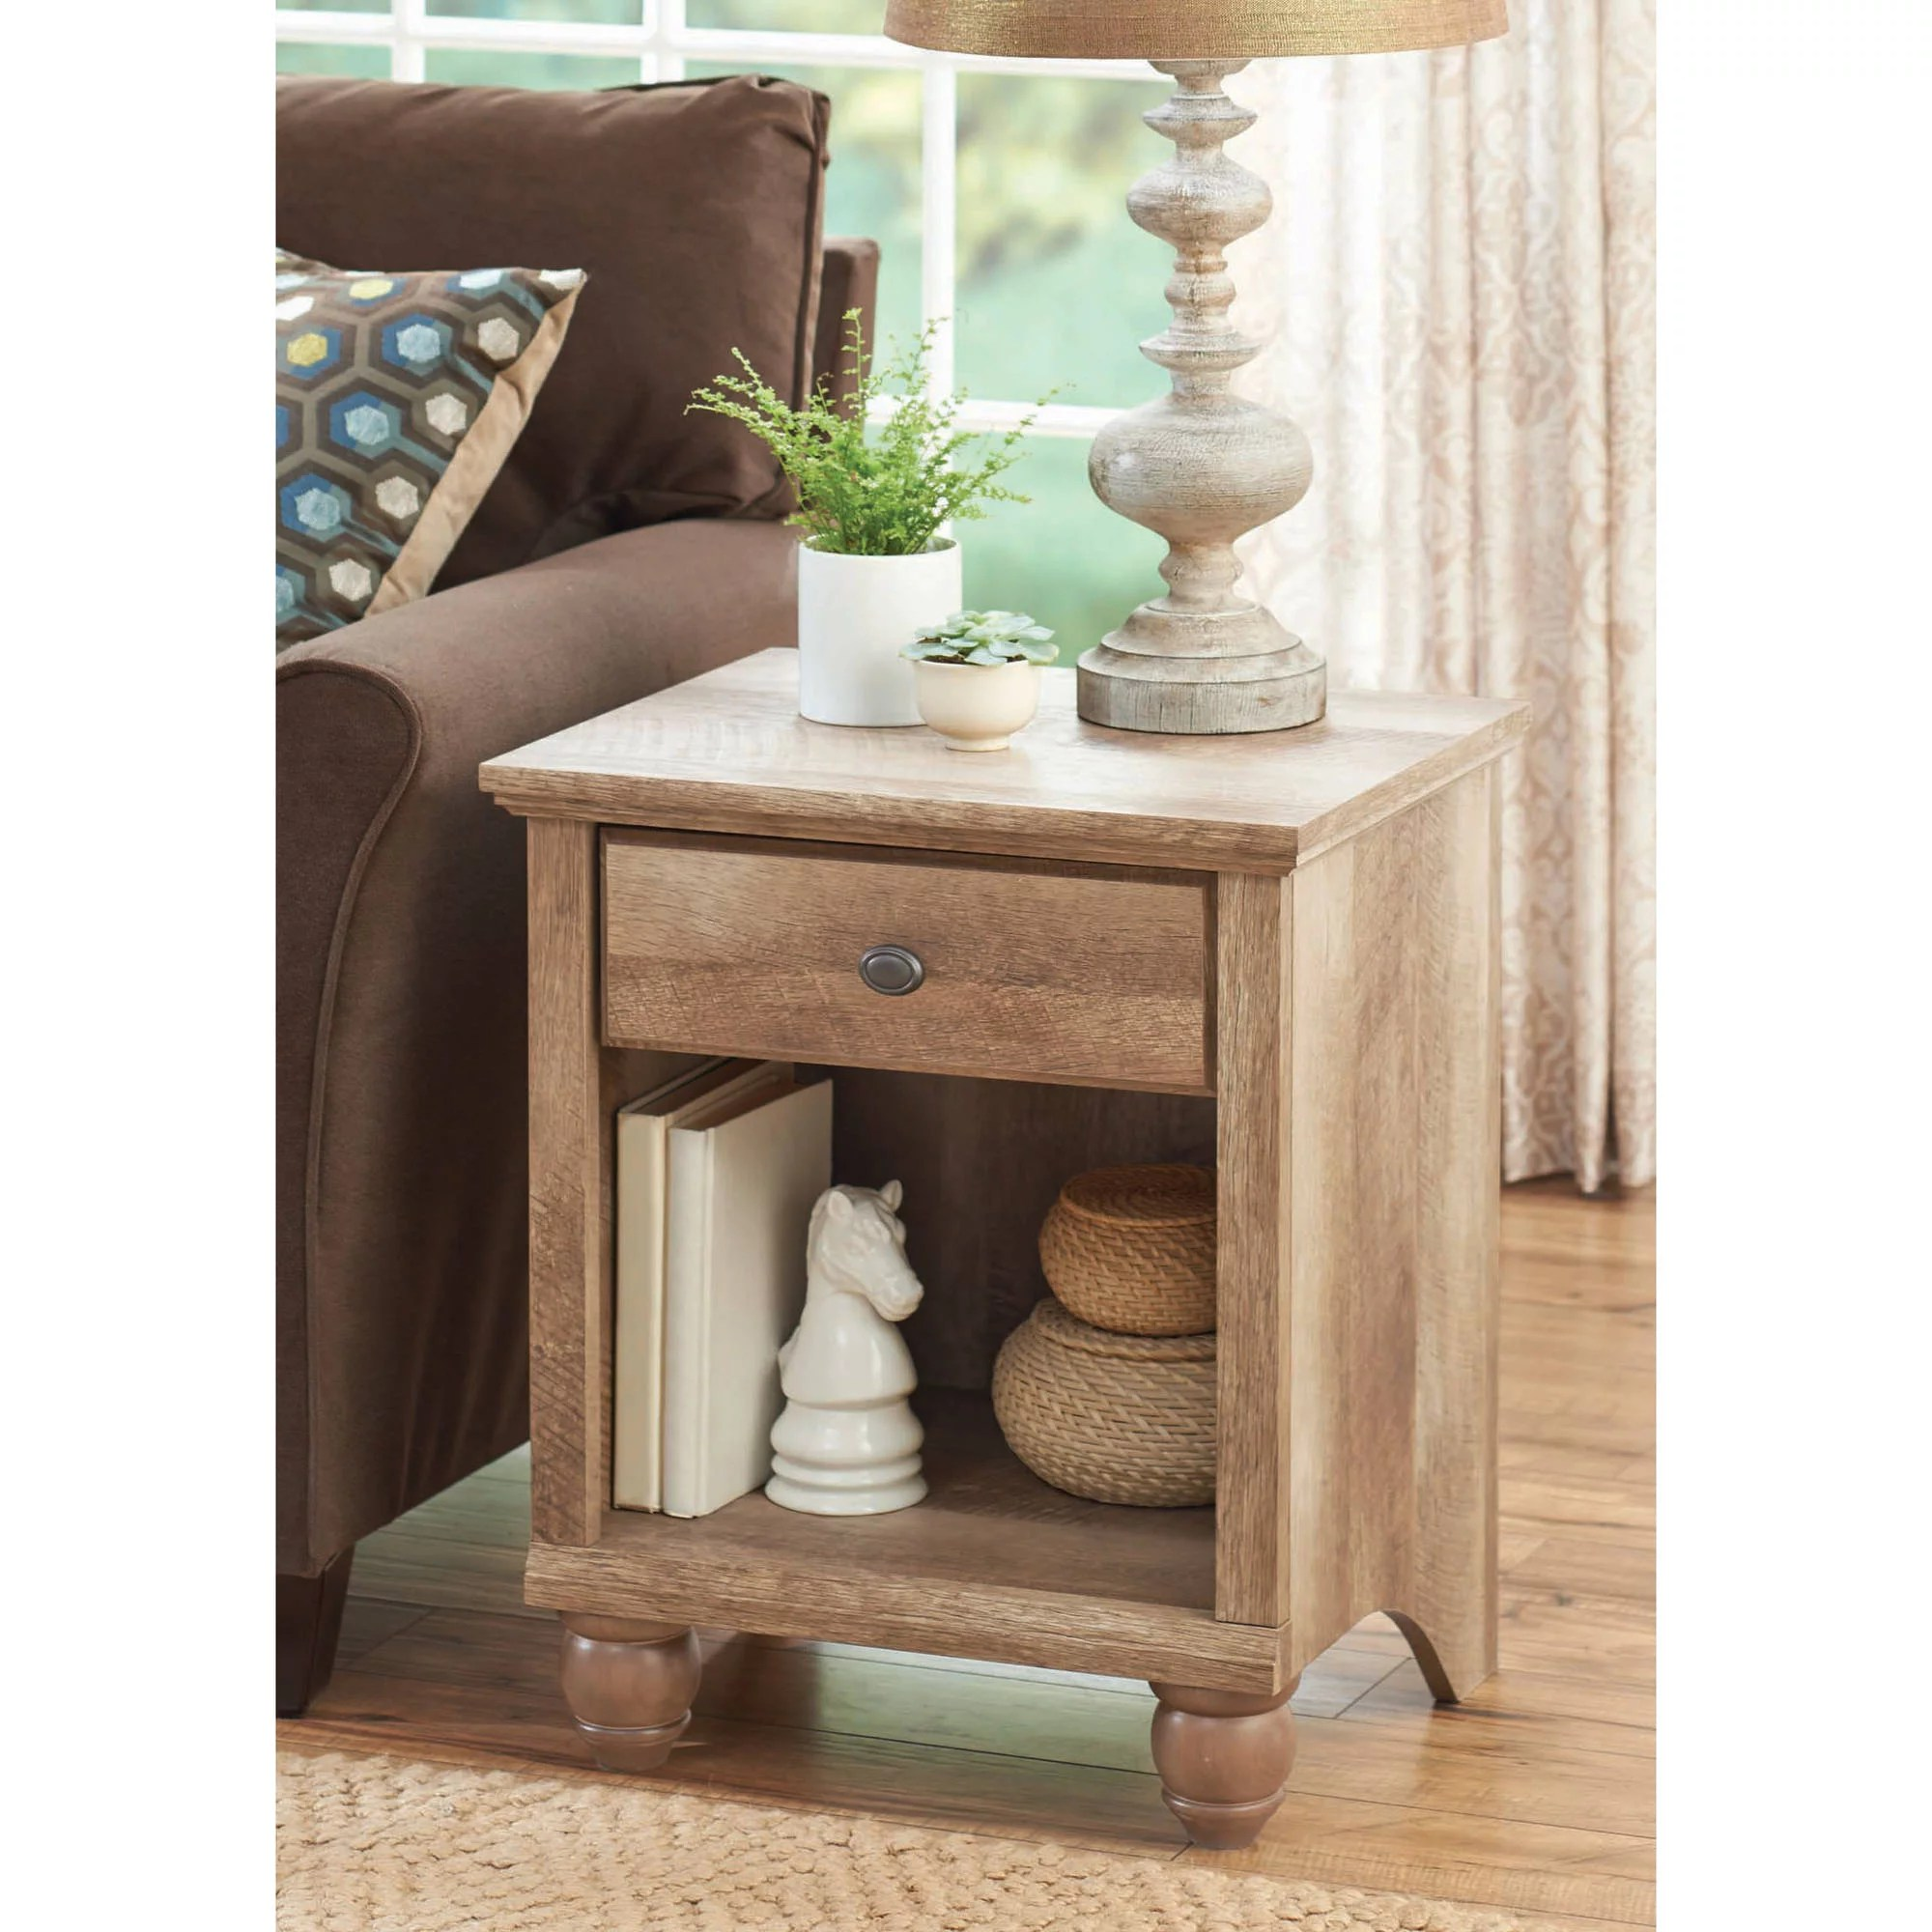 walmart living room furniture light blue grey walls better homes gardens crossmill accent table weathered finish com